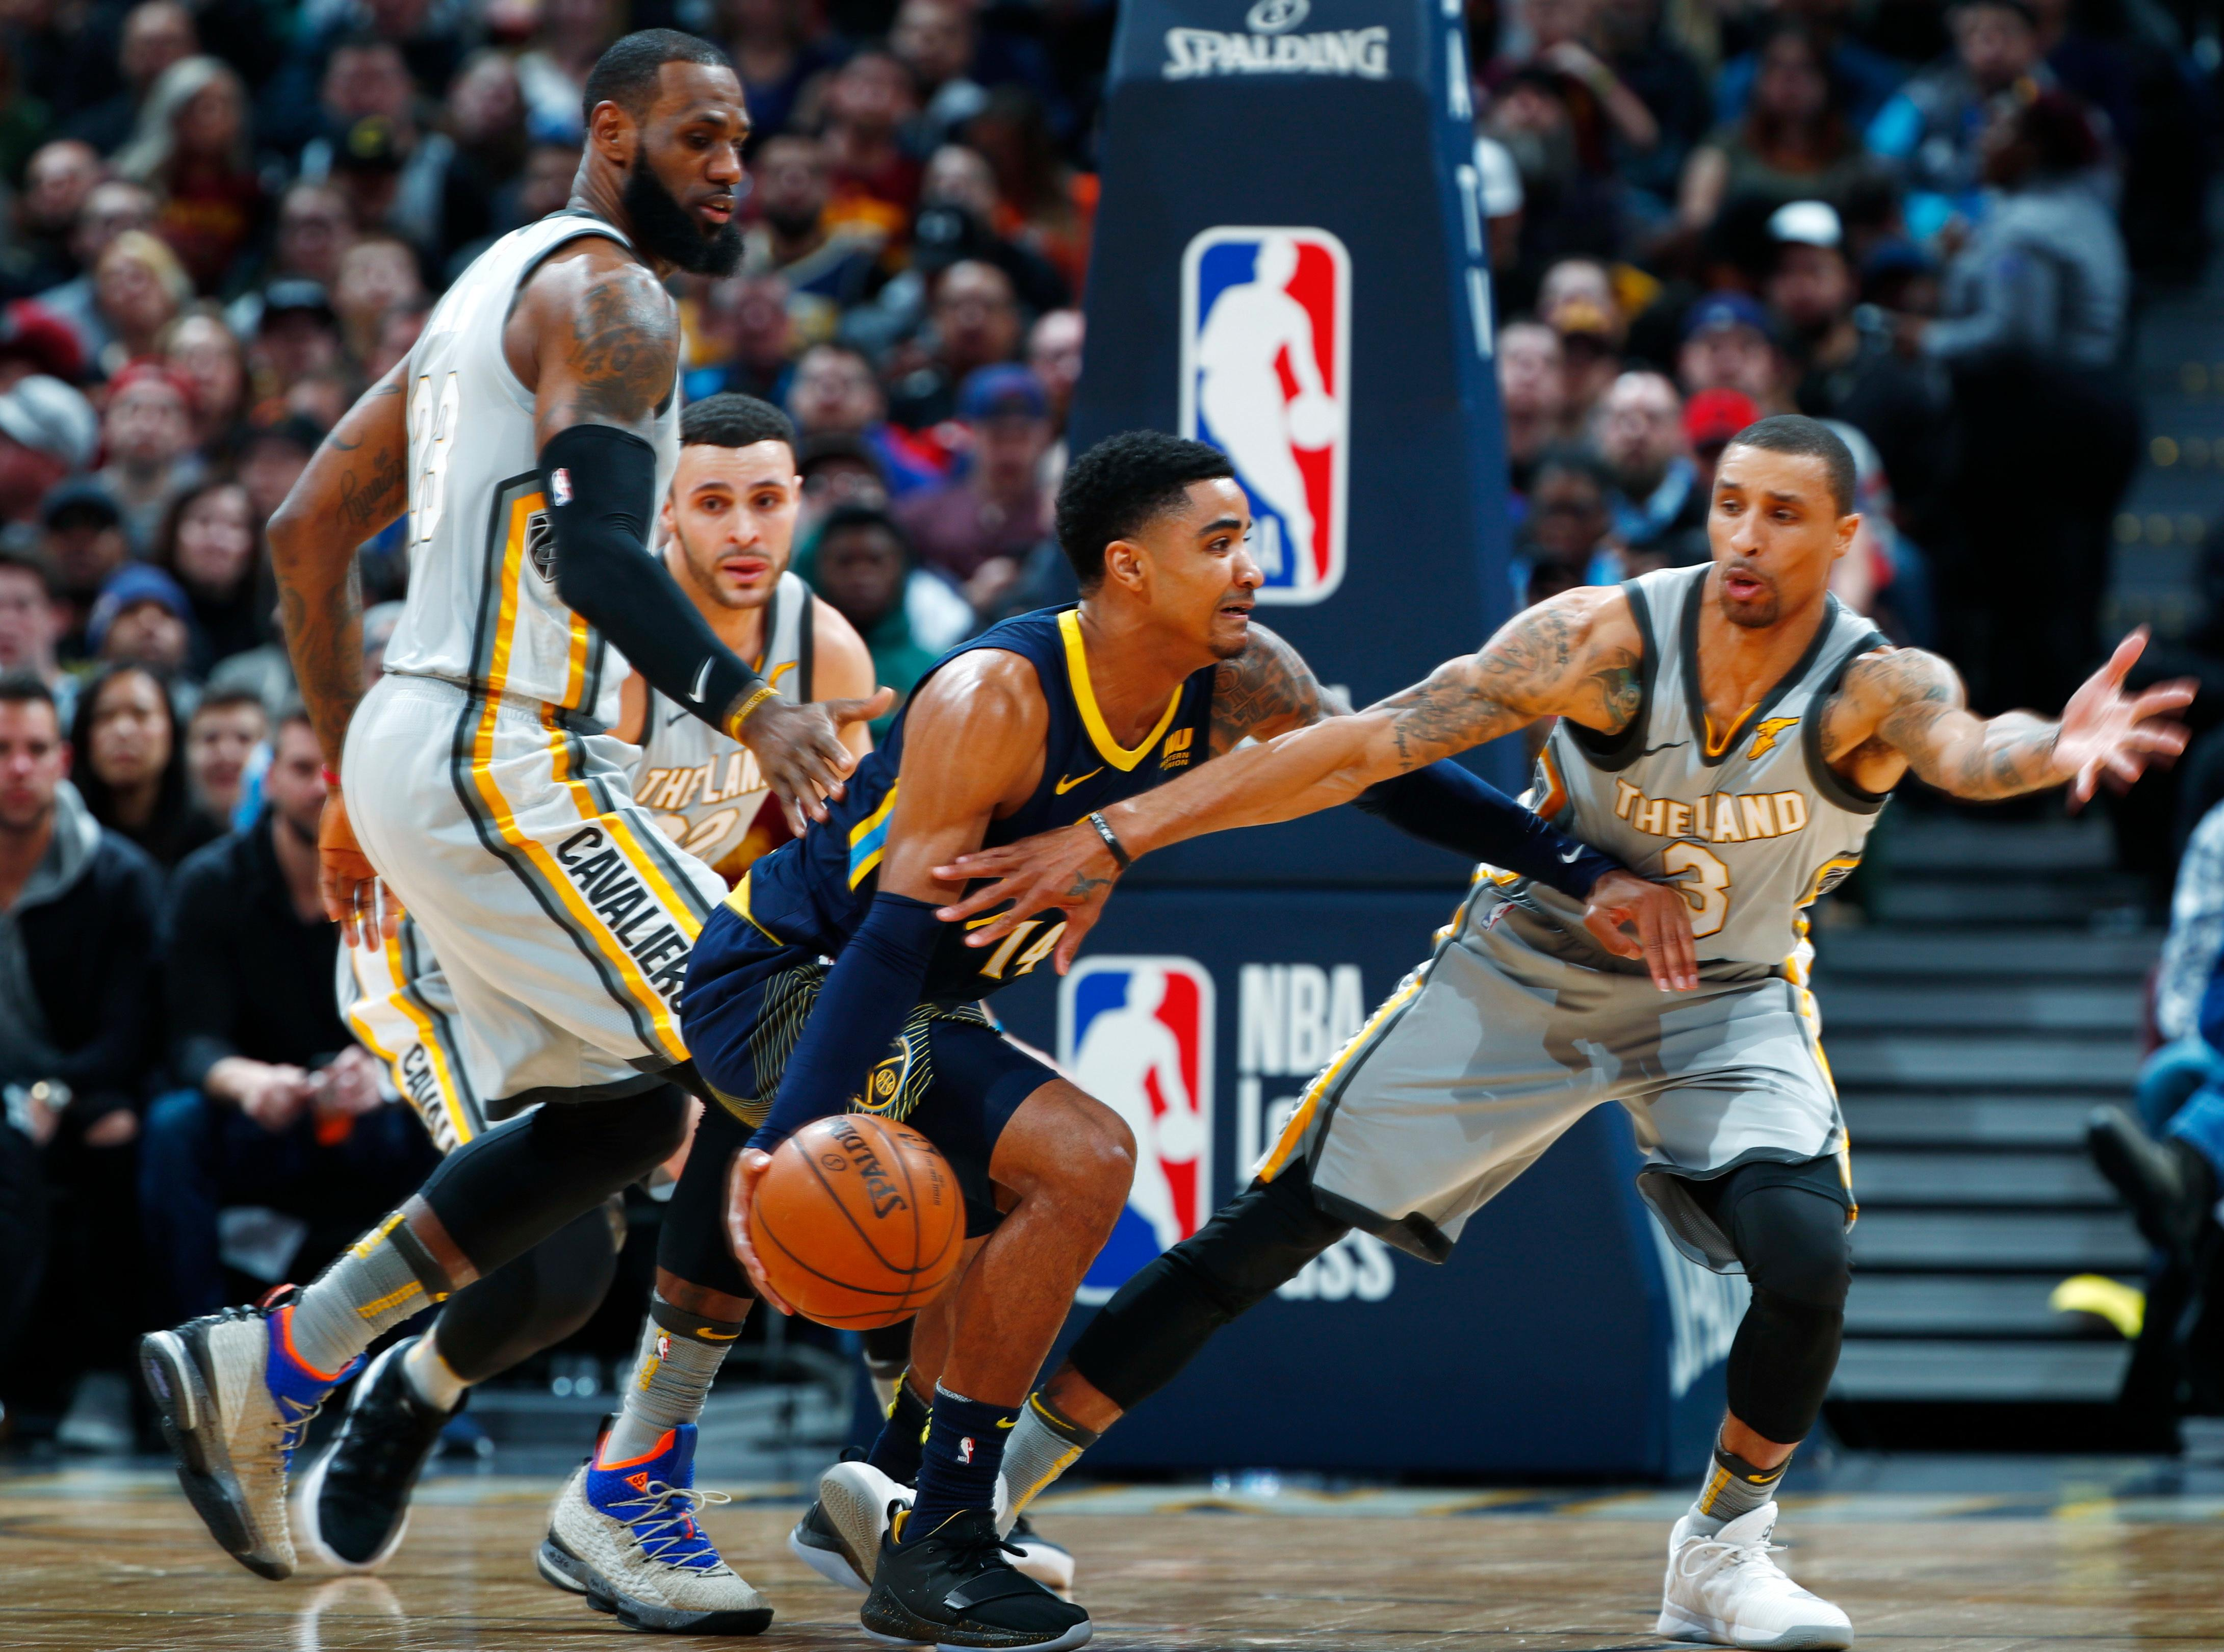 Denver Nuggets guard Gary Harris, center, drives between Cleveland Cavaliers forward LeBron James, left, and guard George Hill during the first half of an NBA basketball game Wednesday, March 7, 2018, in Denver. (AP Photo/David Zalubowski)